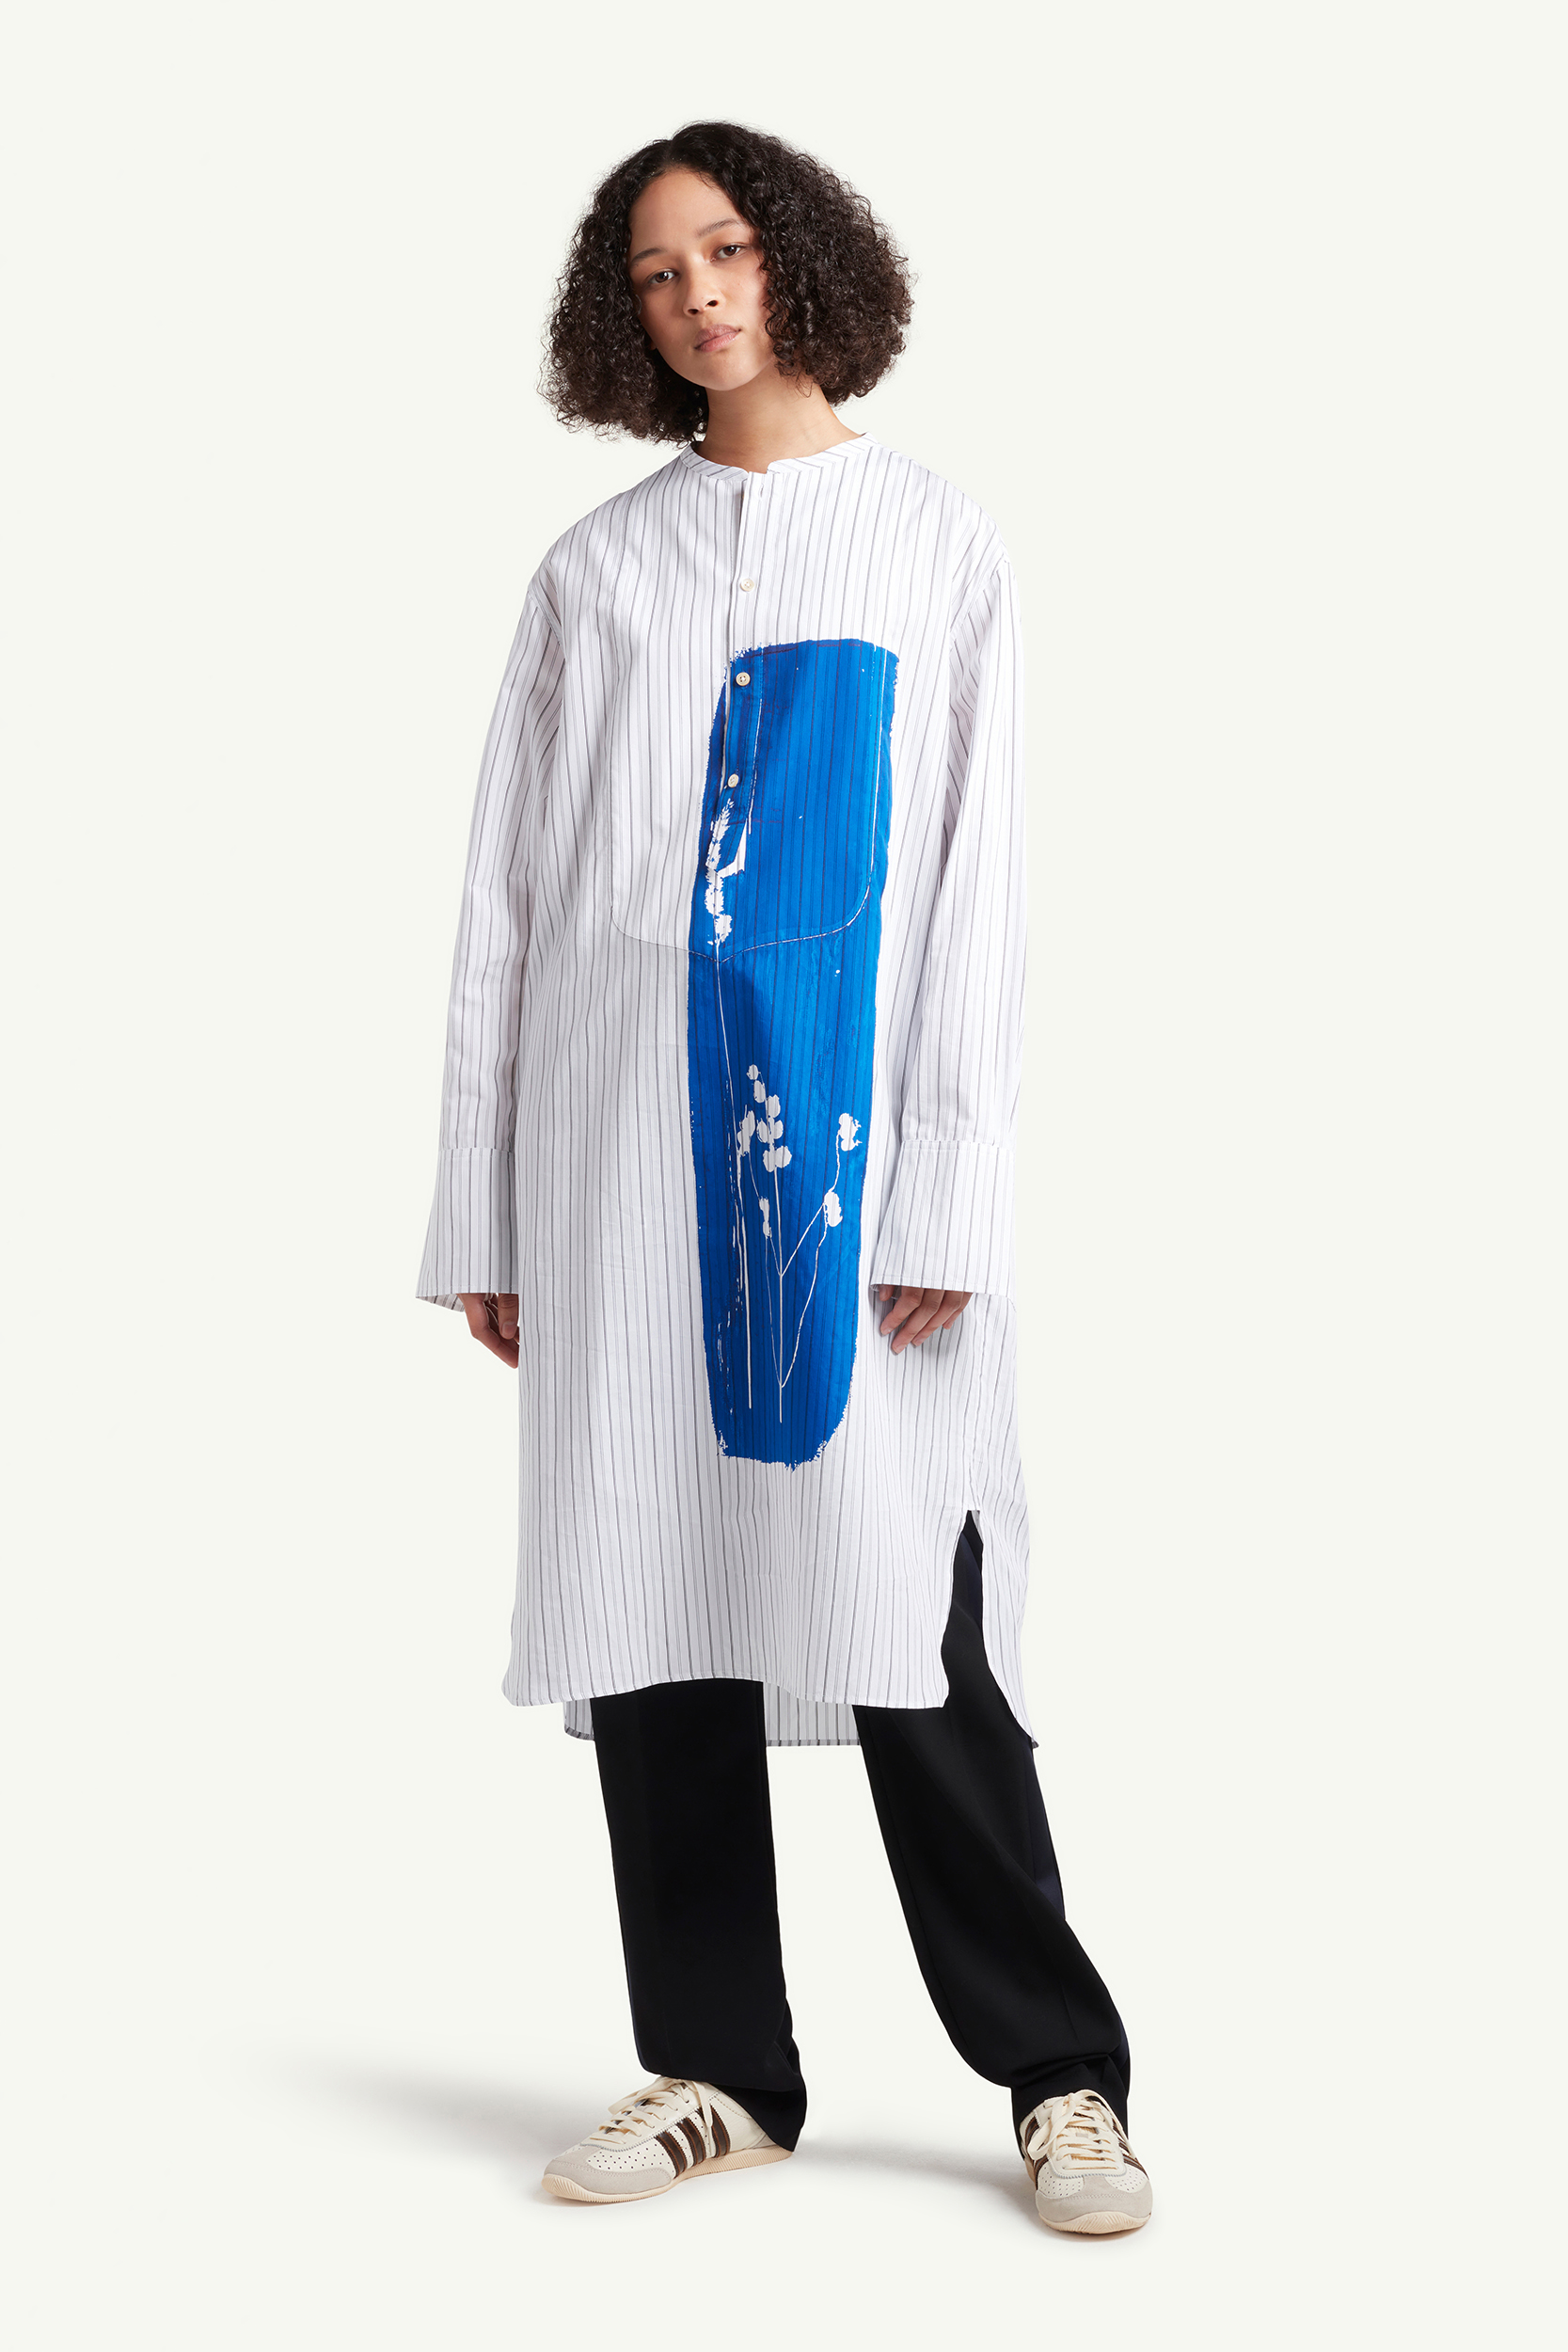 Womenswear model wearing long white with blue graphic Wales Bonner shirt | eCommerce Photography London | LRP